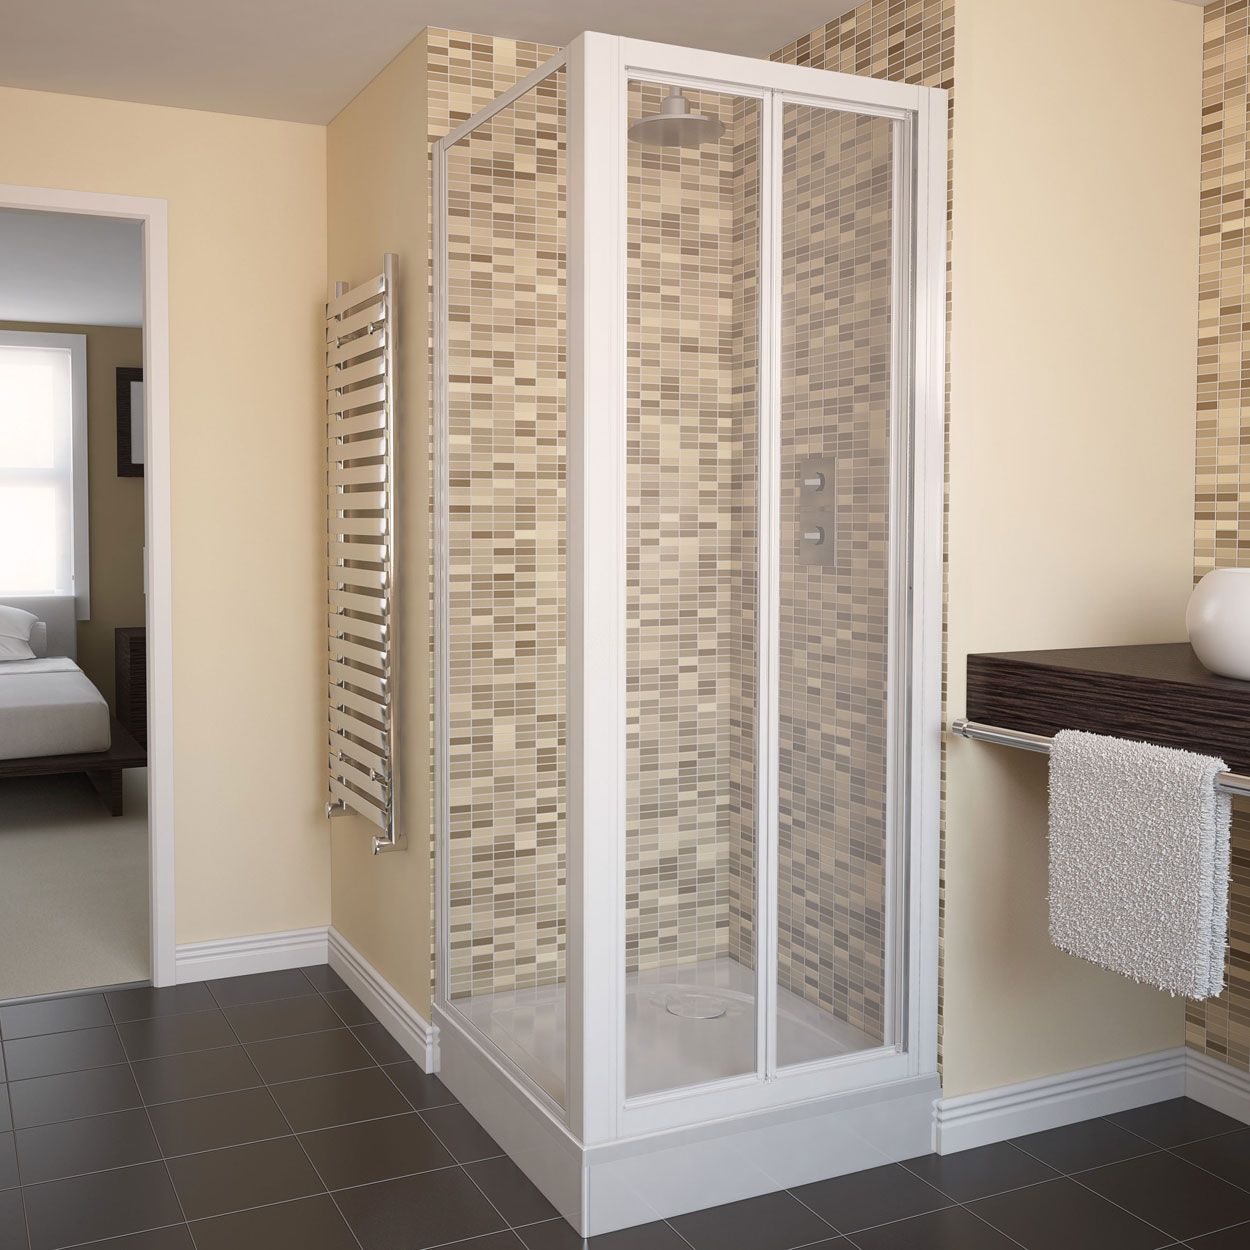 Plastic Bi Fold Shower Doors | Migrant Resource Network